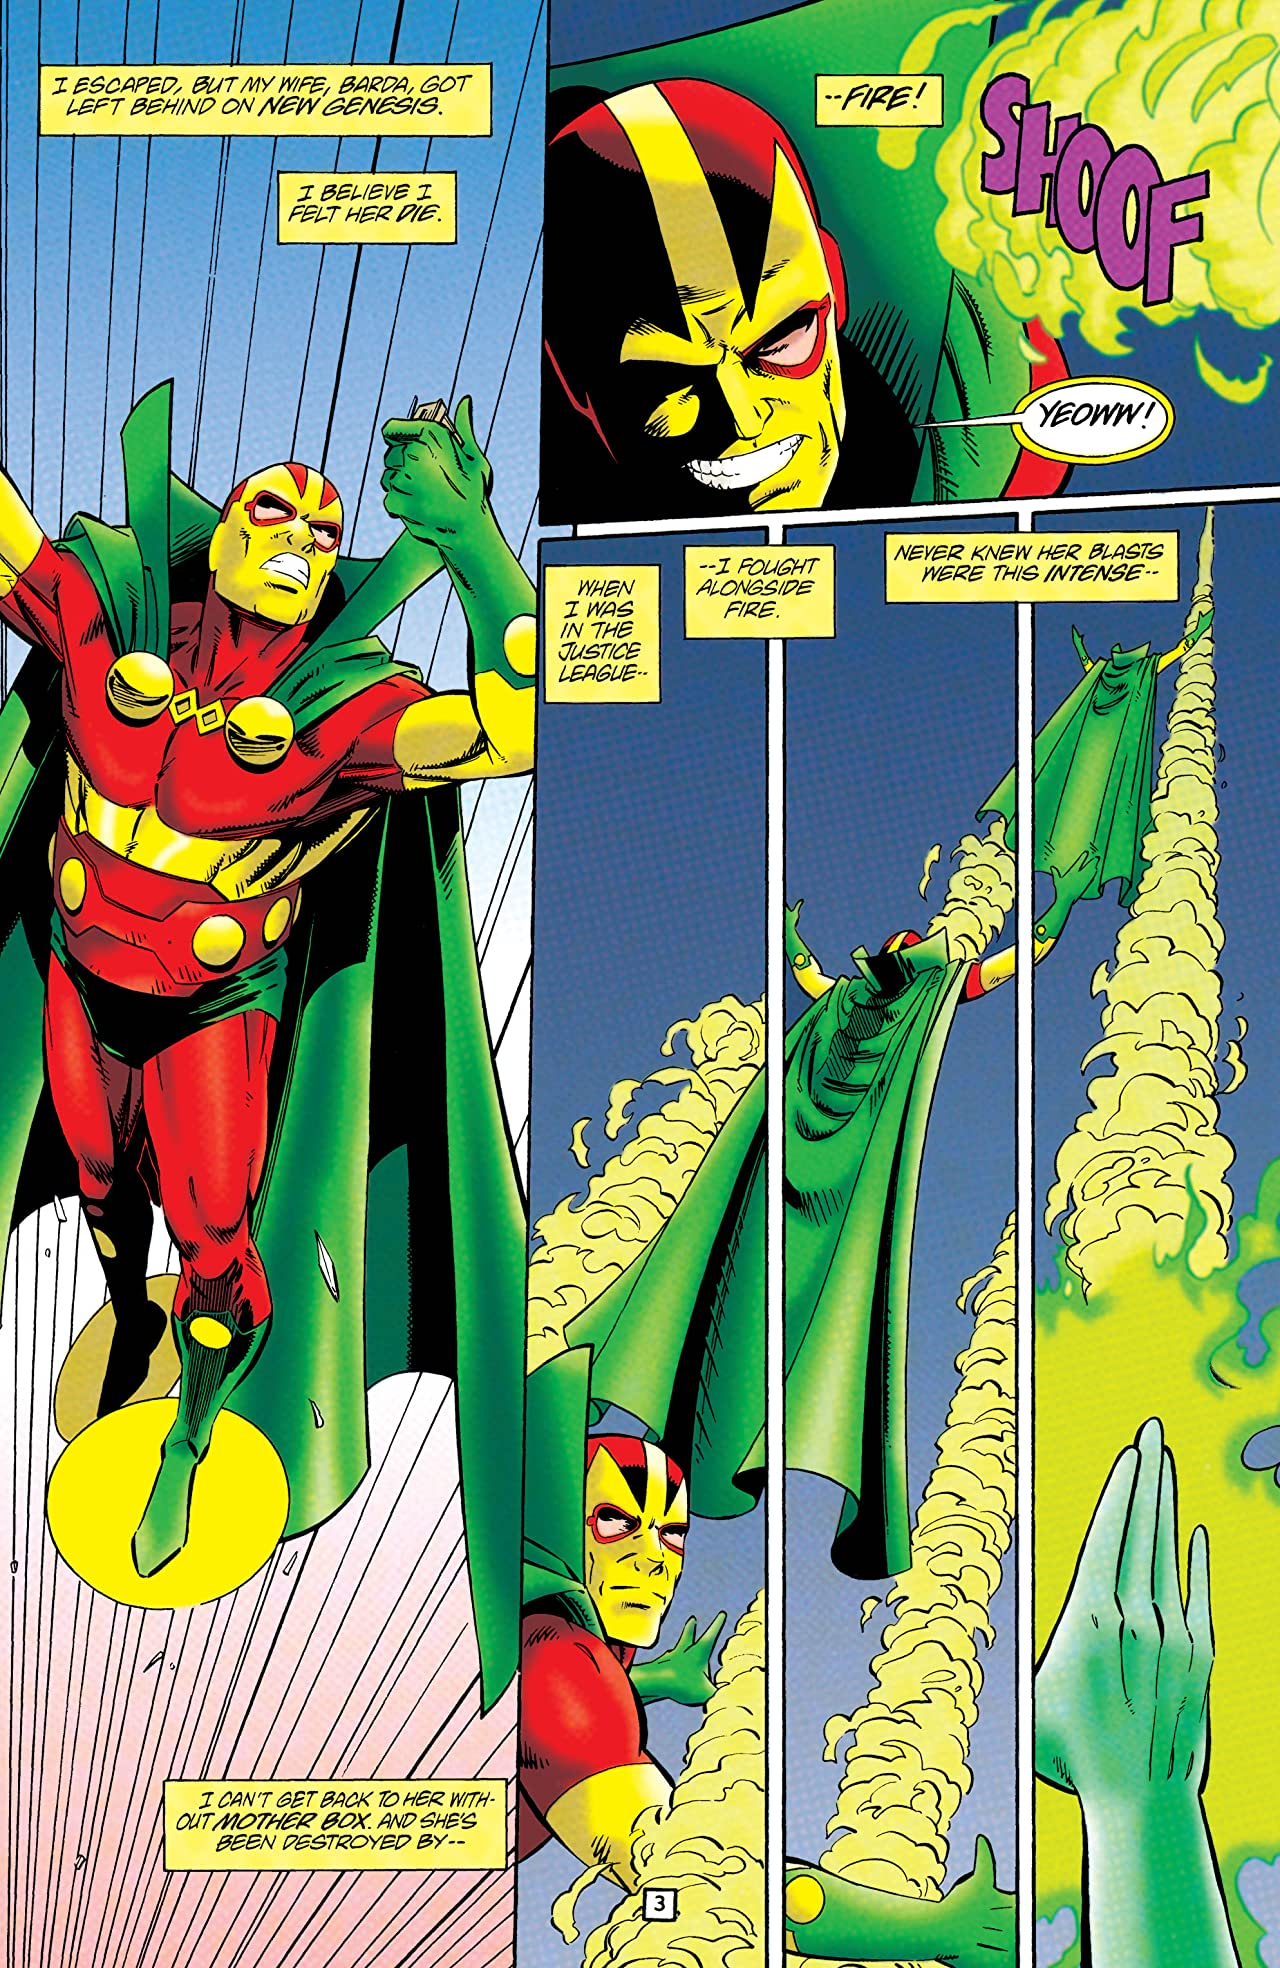 Mister Miracle (1996) #2